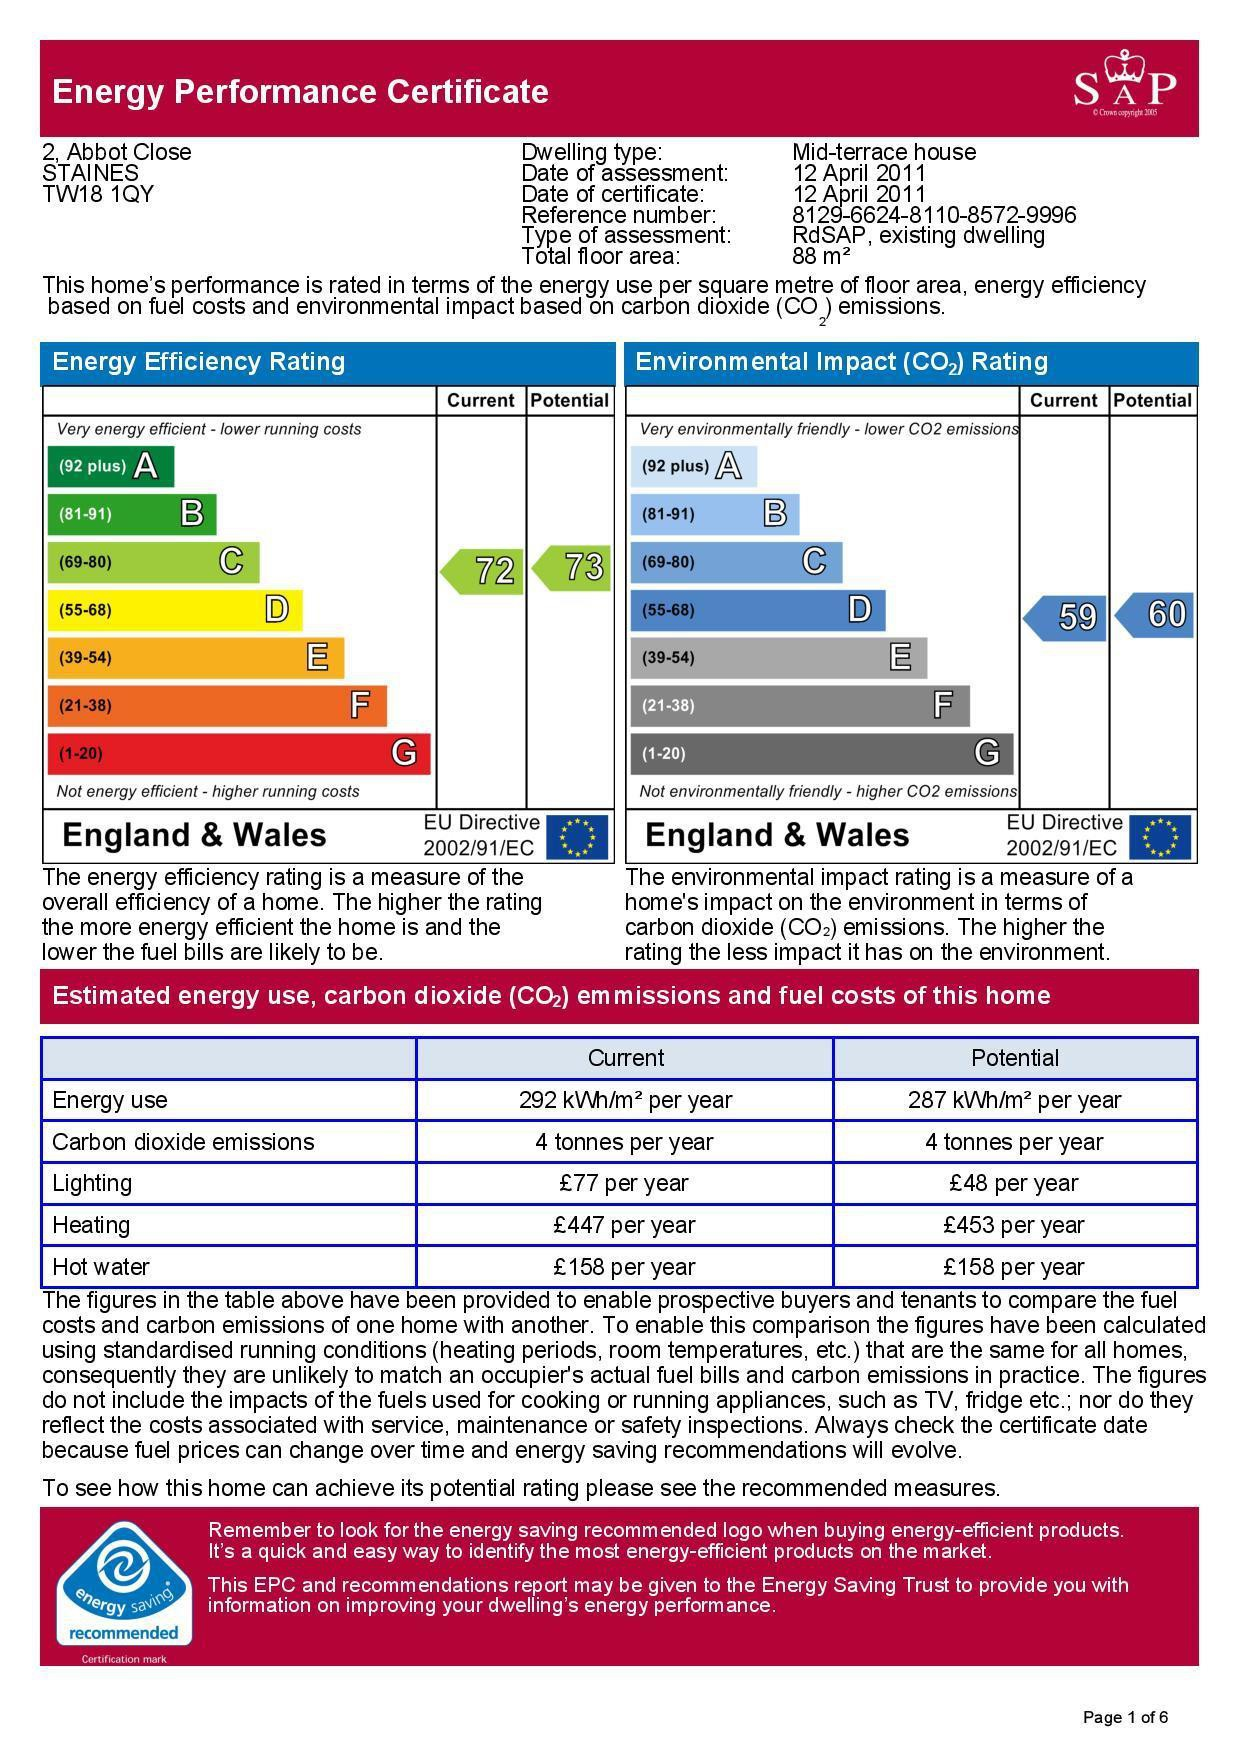 EPC Graph for 2 Abbot Close, Laleham, Middlesex TW18 1QY